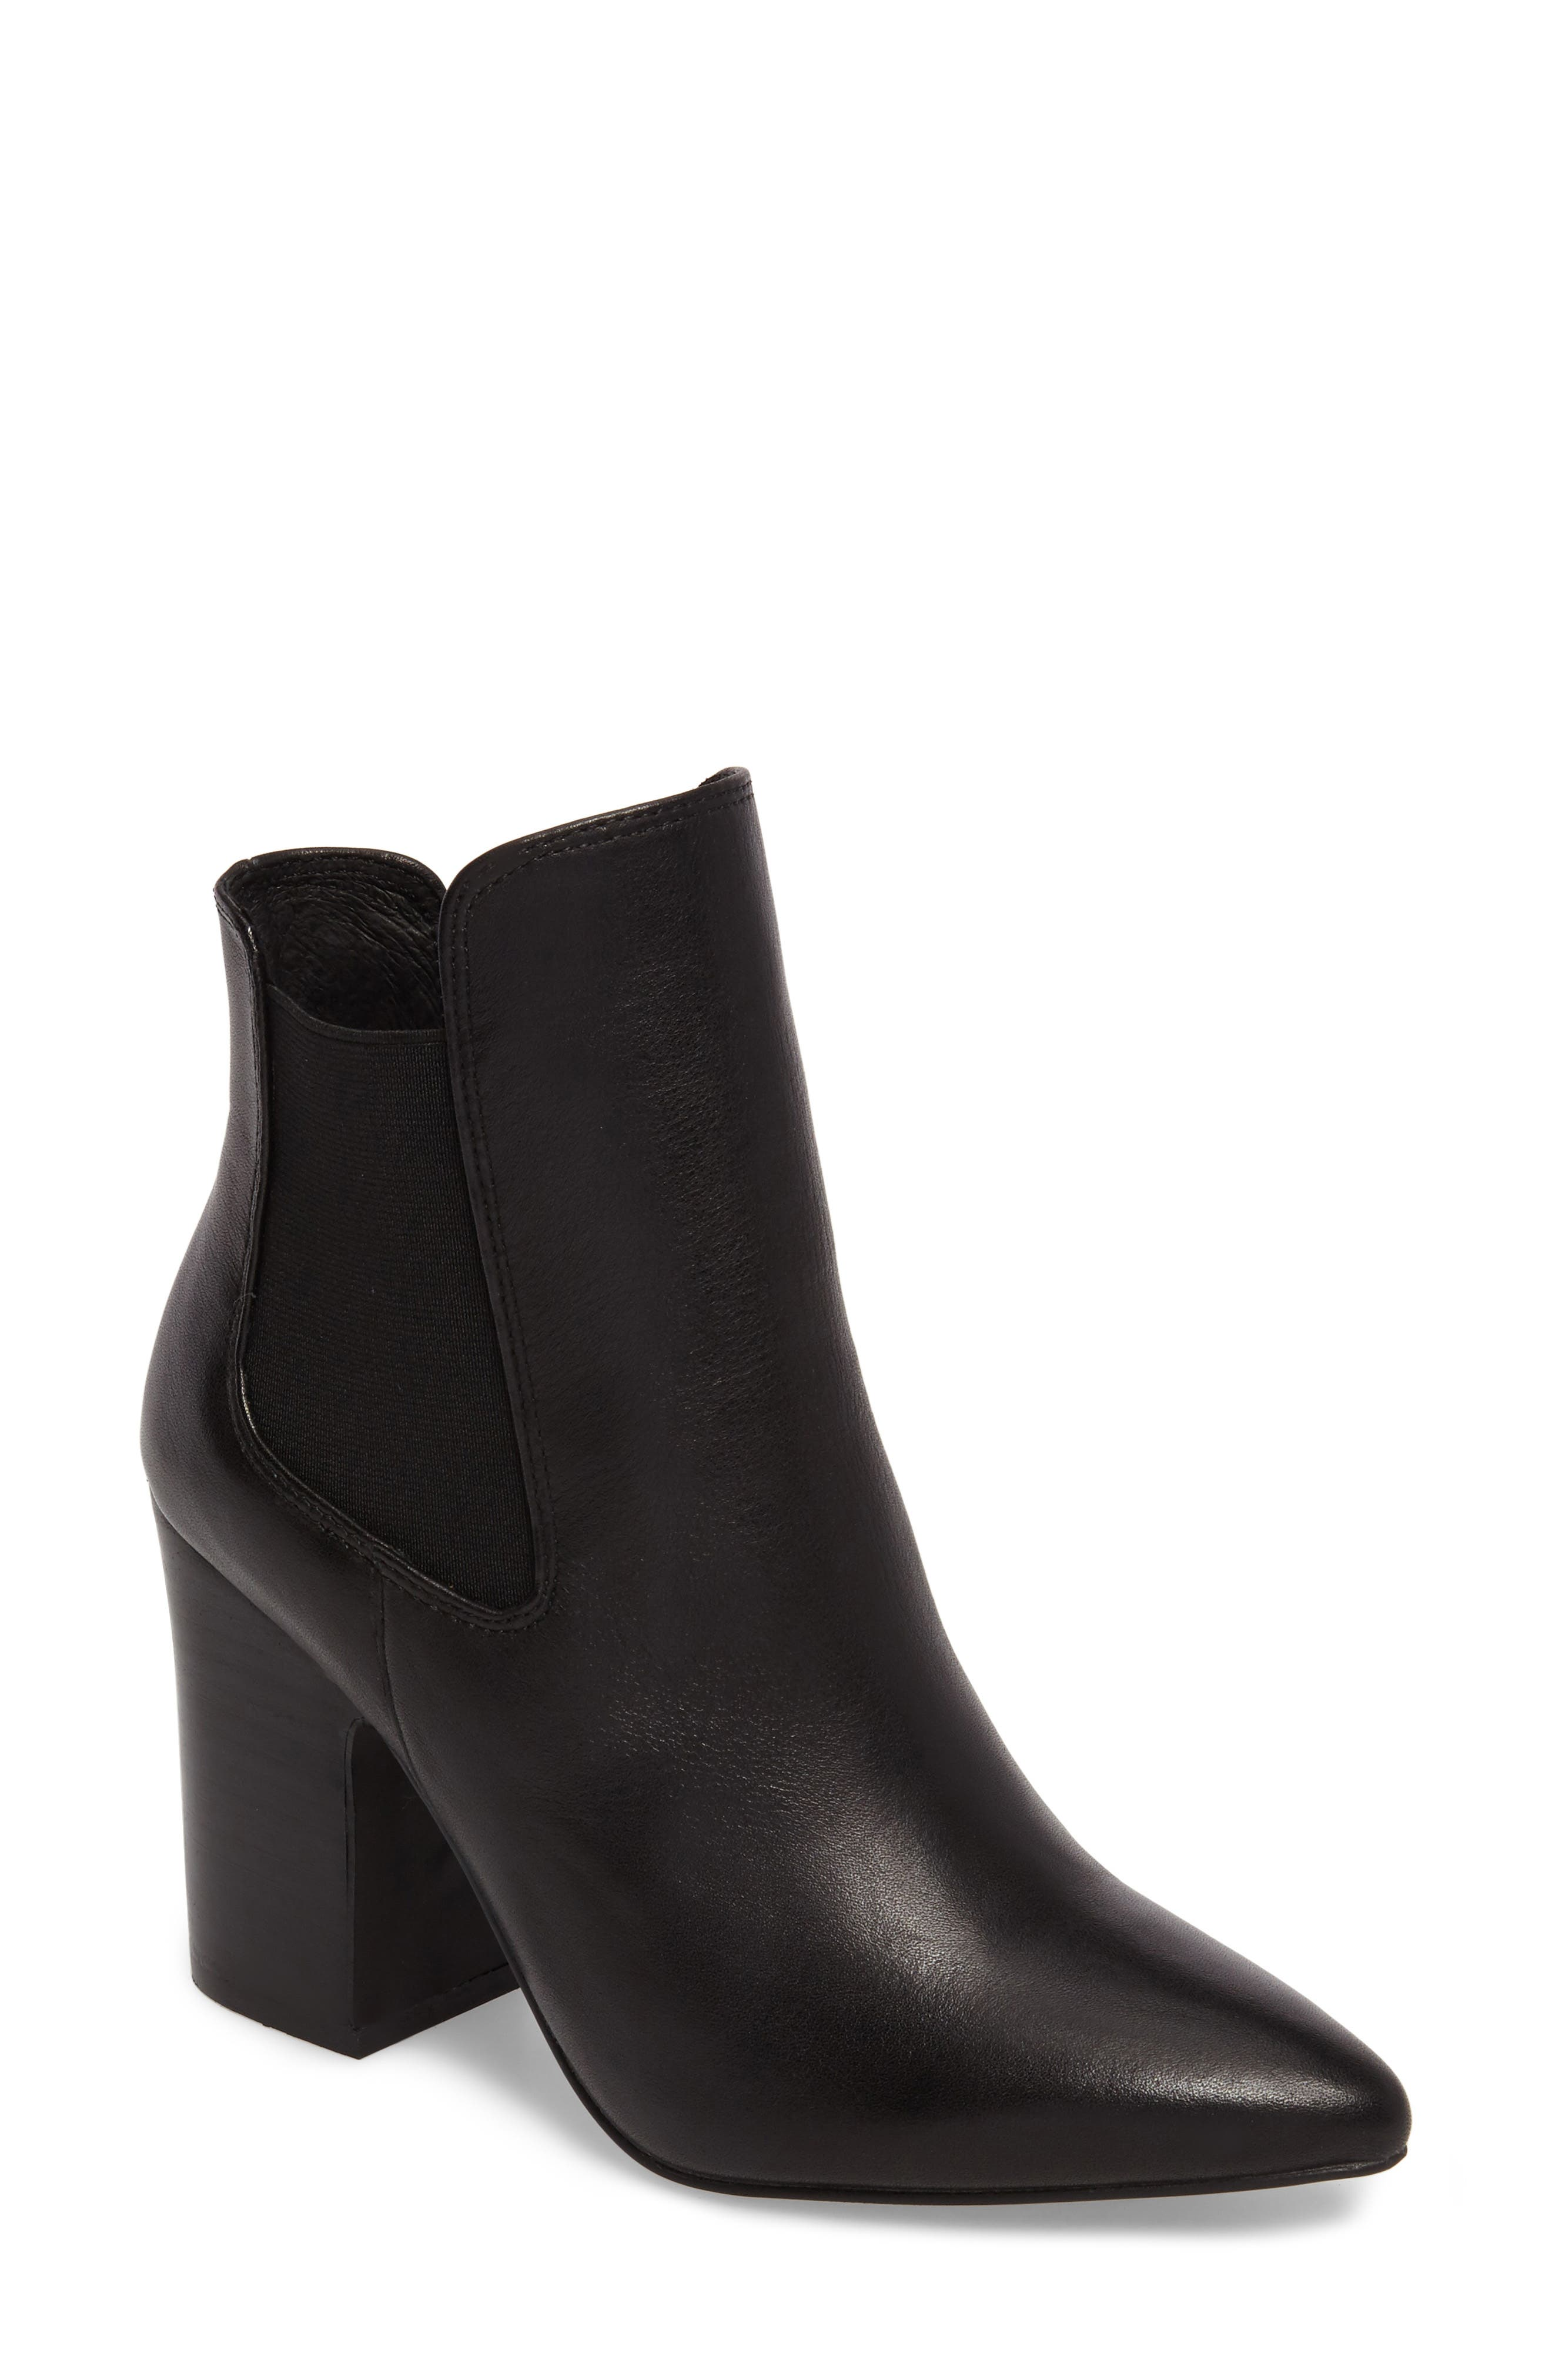 Starlight Bootie,                         Main,                         color, Black Leather